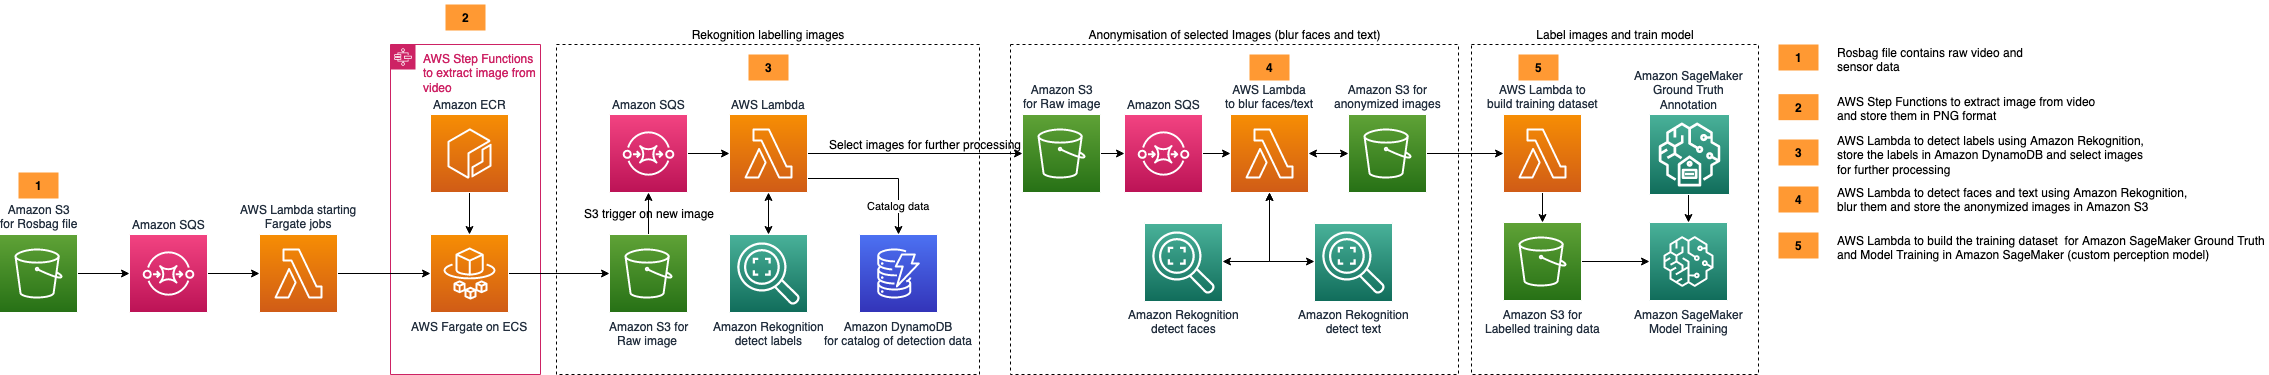 Figure 1 - Architecture Showing how to build an automated Image Processing and Model Training pipeline